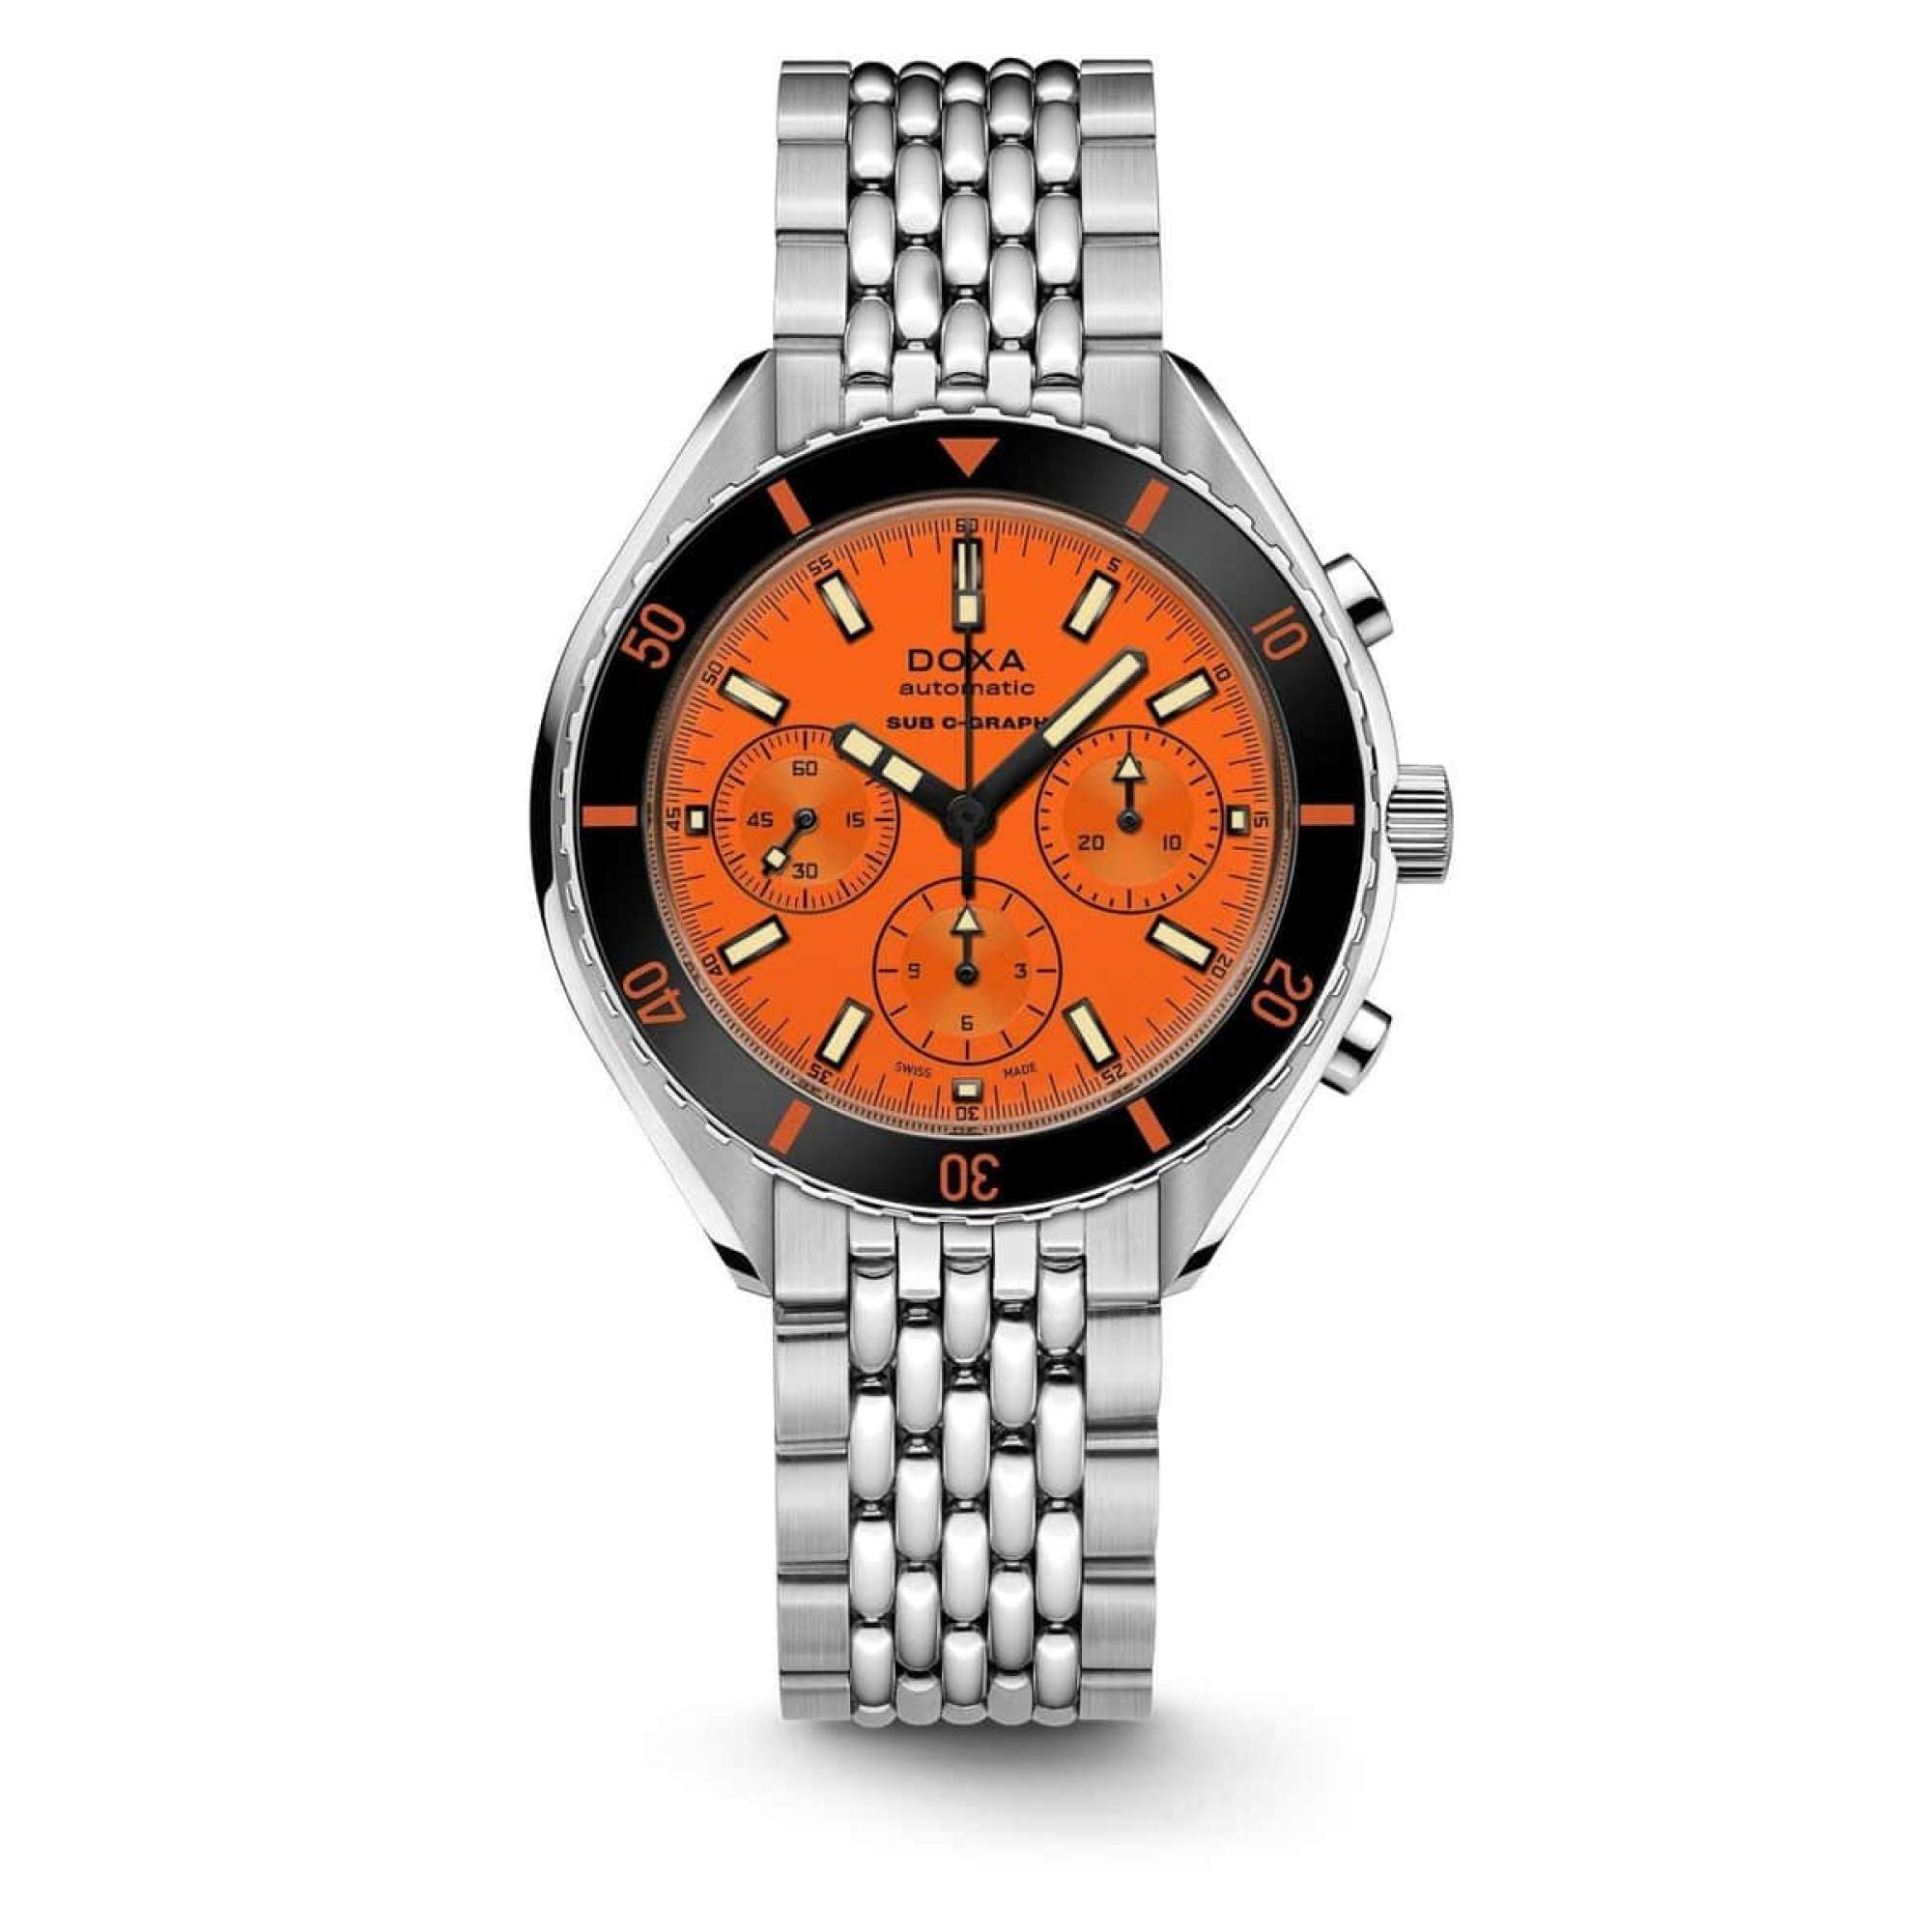 Doxa SUB 200 C-GRAPH Professional 798.10.351.10 – Swiss Time